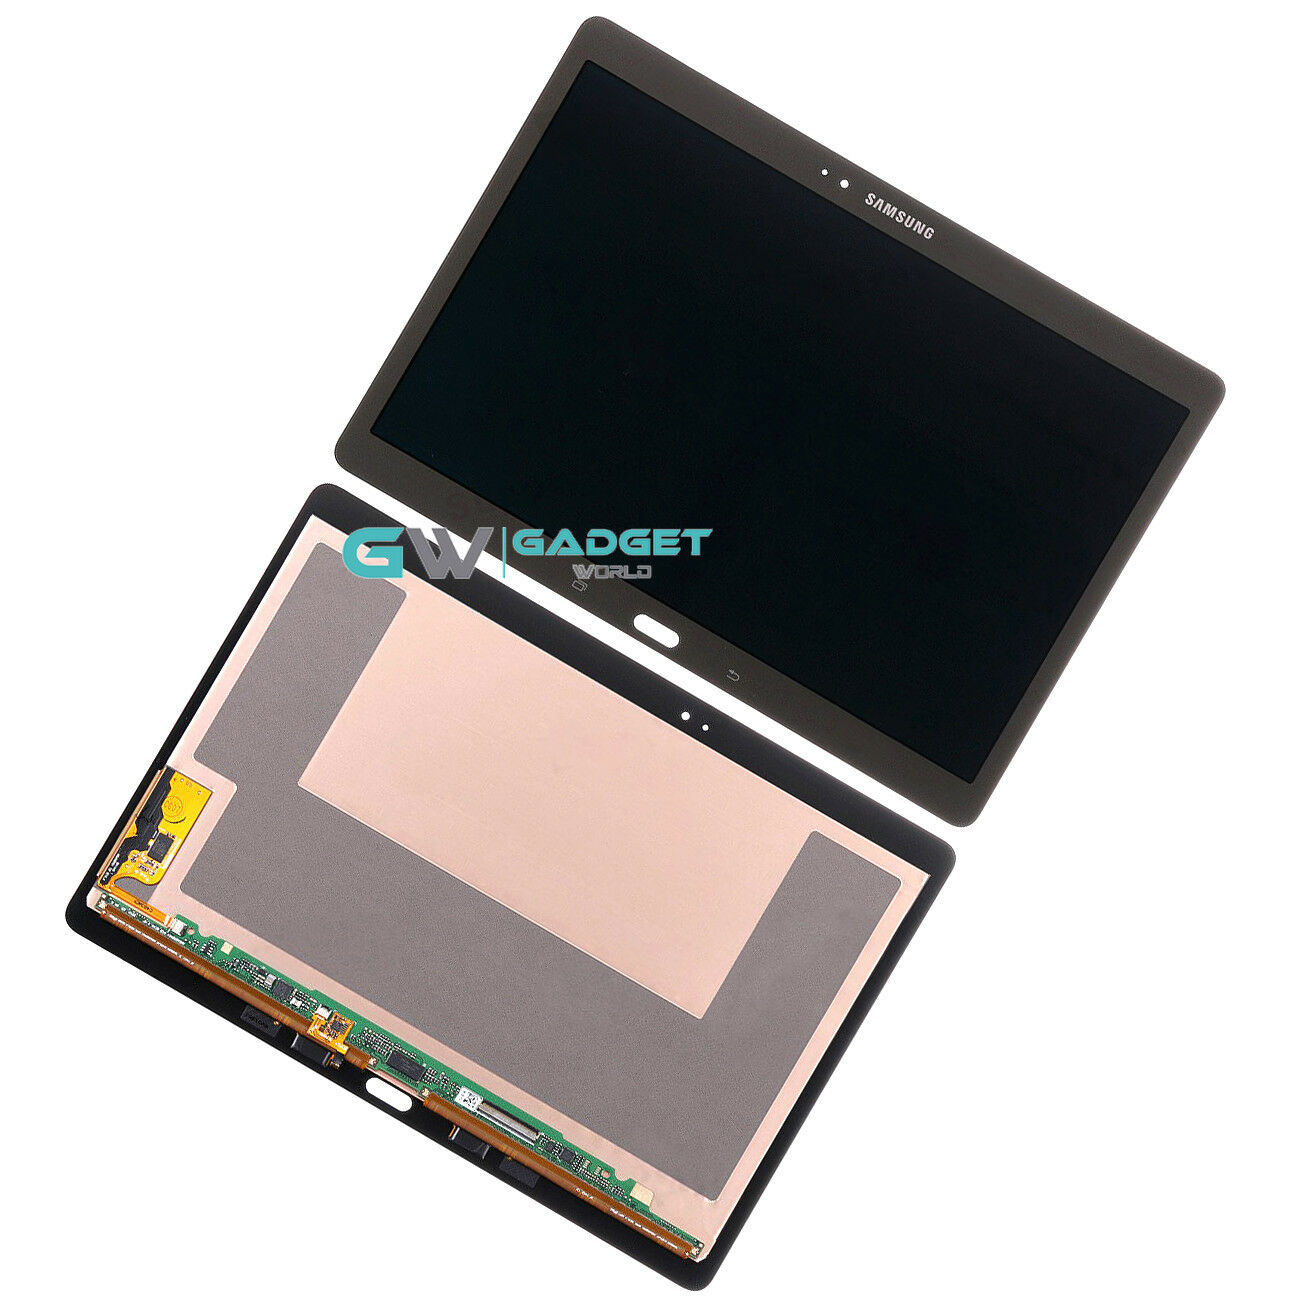 New LCD Display Touch Screen Assembly Samsung Galaxy Tab S 10.5 SM-T800 T805